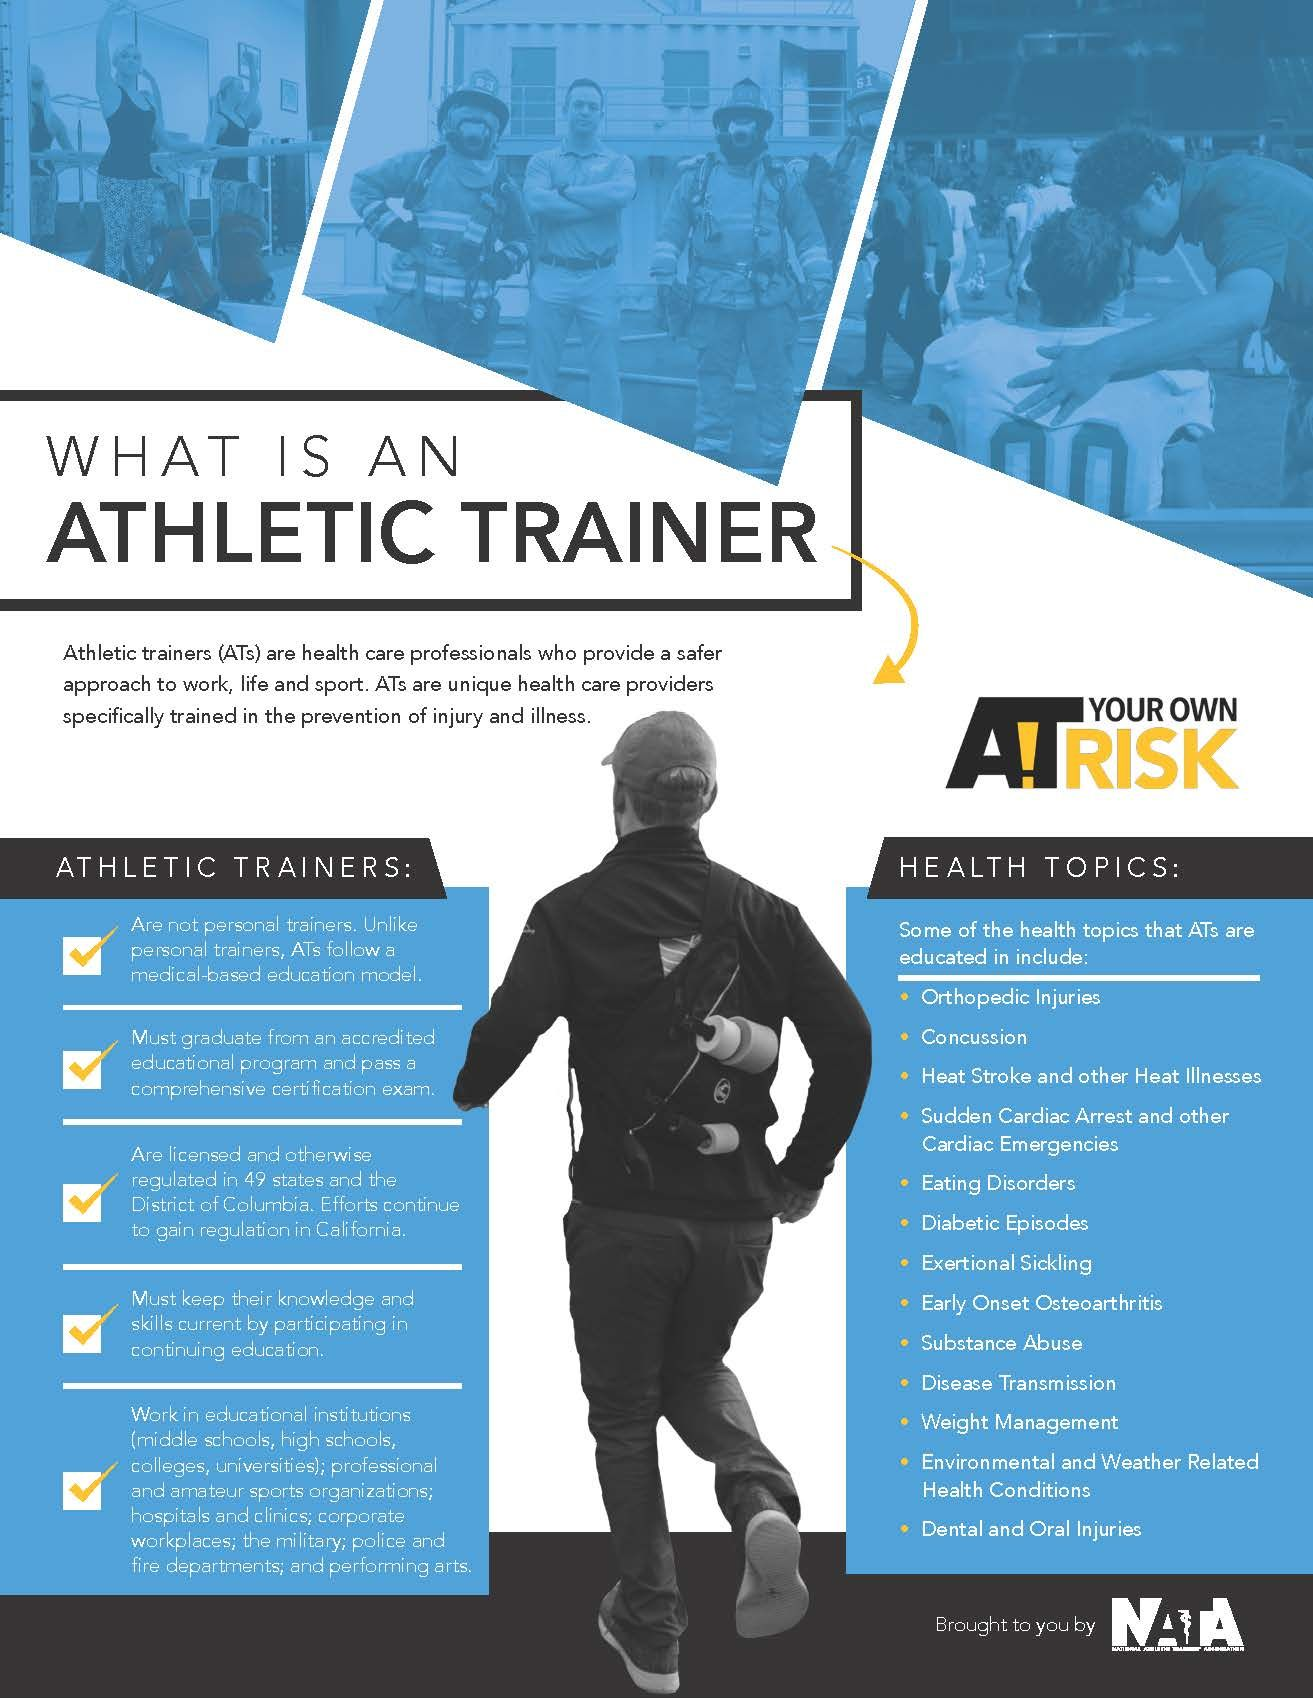 Athletic trainers (ATs) are highly qualified, multi